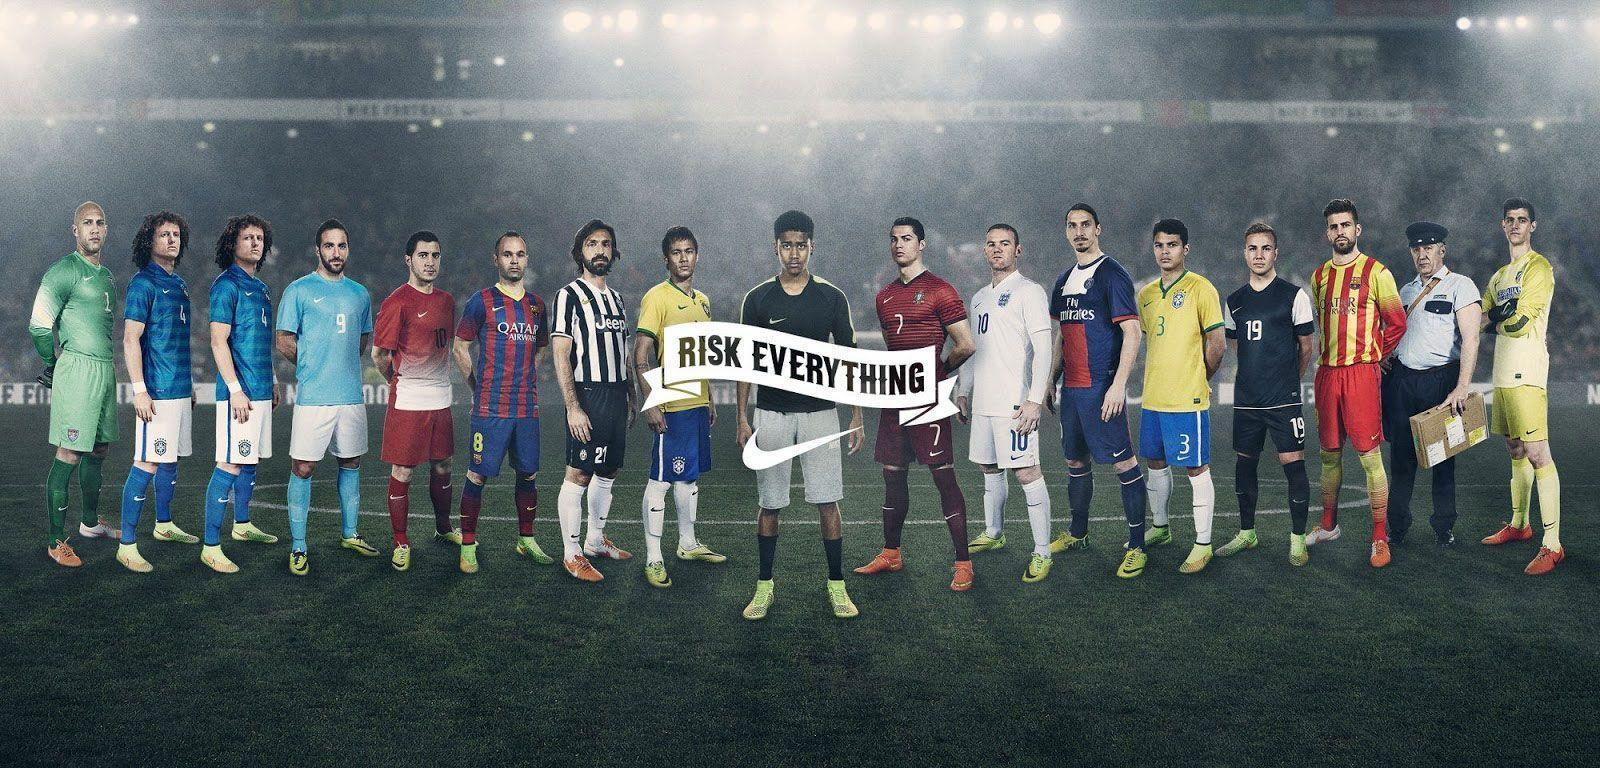 Nike football is everything wallpaper - photo#1